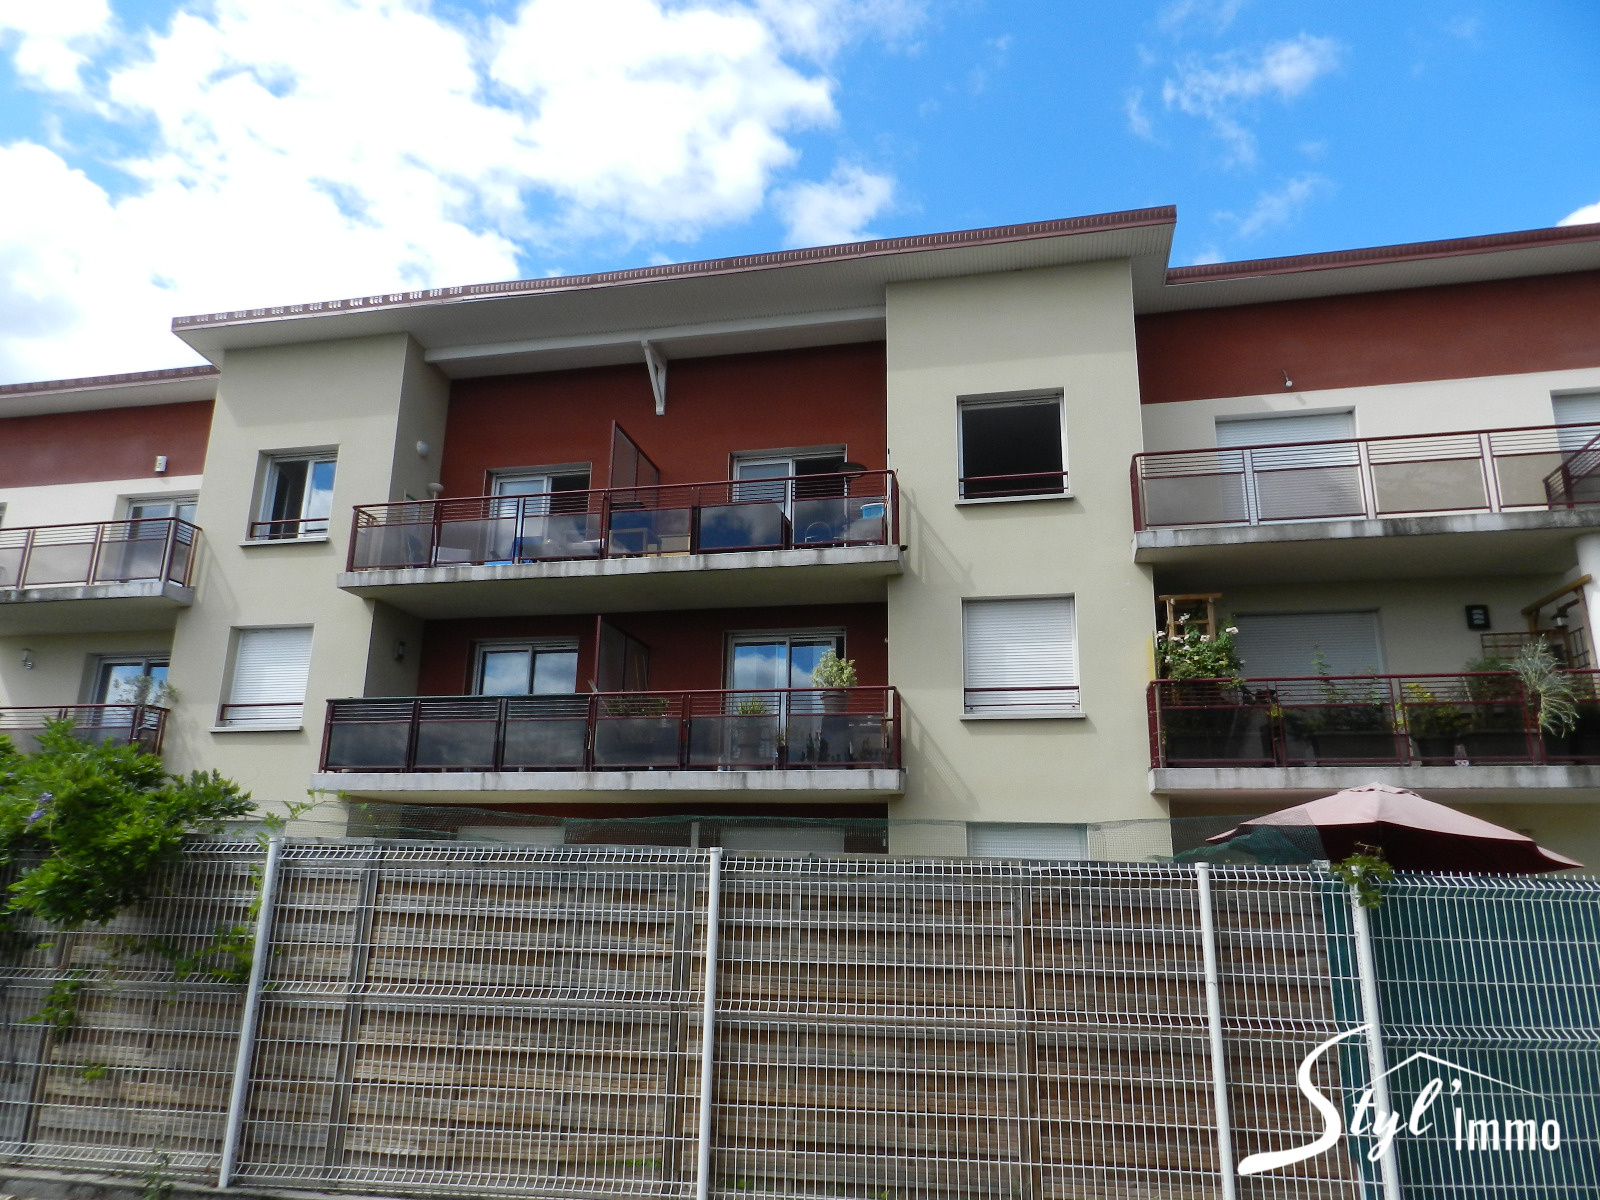 Annonce vente appartement meyzieu 69330 50 m 169 000 992738553355 for Appartement 2 pieces yverdon